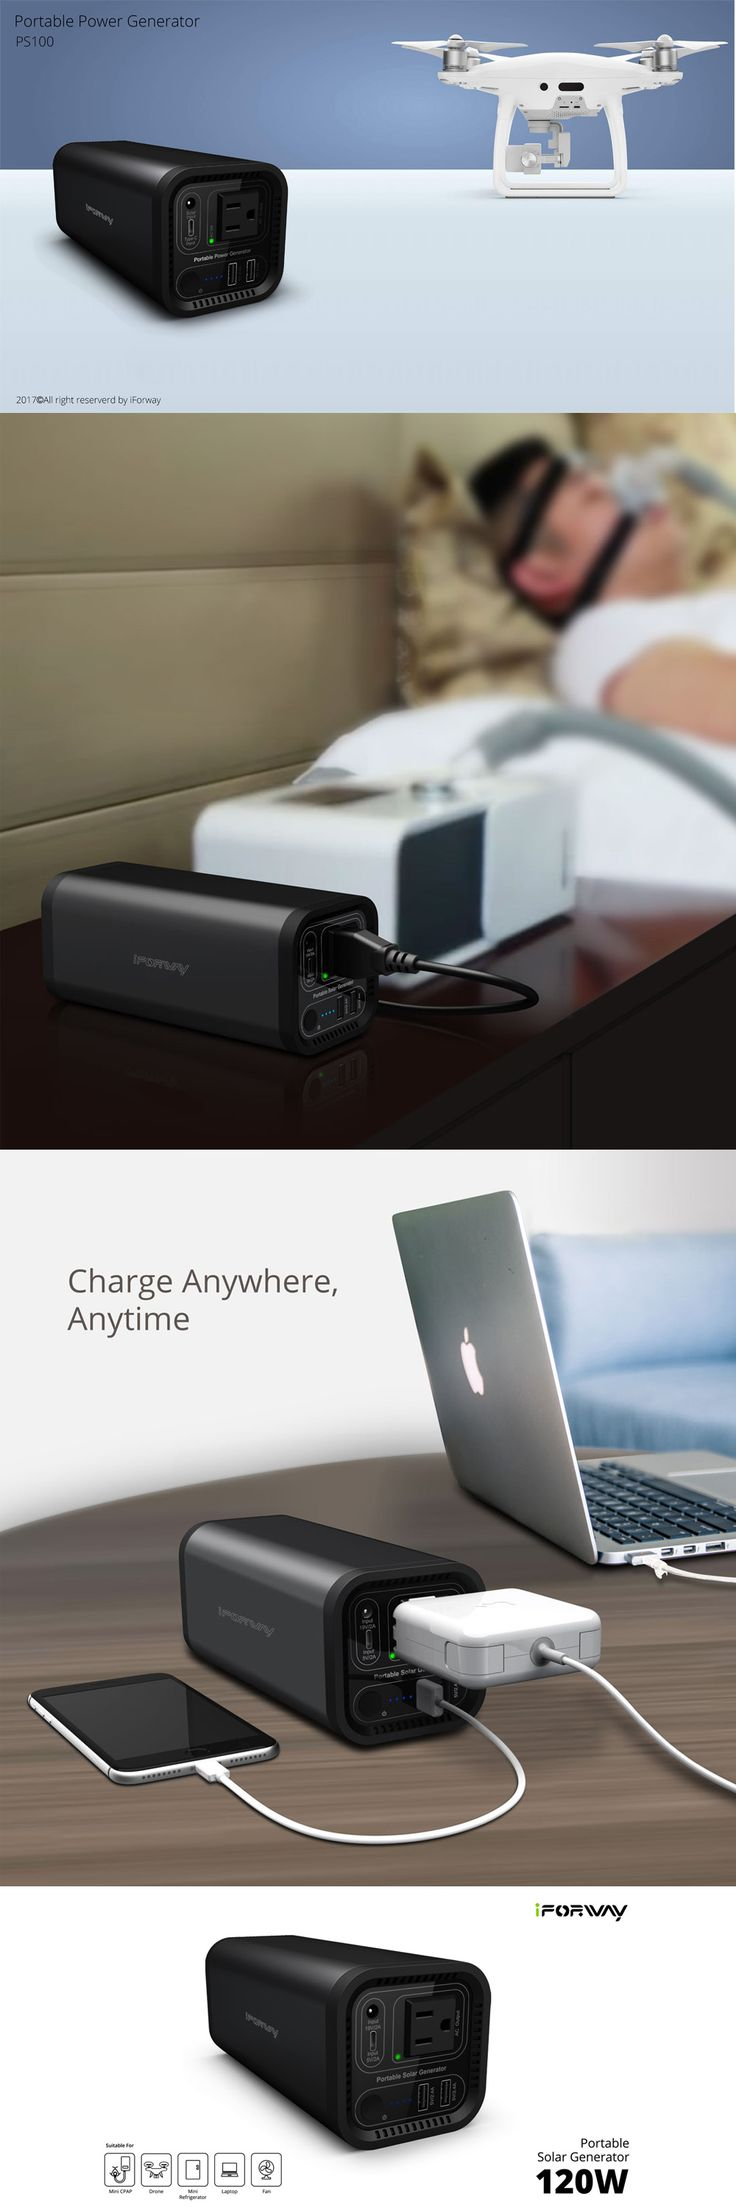 Huge capacity 41,600mAh makes solar power bank fully support all powering demands like Notebook , computer, fans,mini refrigerator,handheld devices,mobile phones and  so on. #powerbank #powergenerator #powersupply #portablepowerbank #solargenerator #solarpowerbank #camping #emergency #CAPA #powerpack #externalbattery #emergencybattery